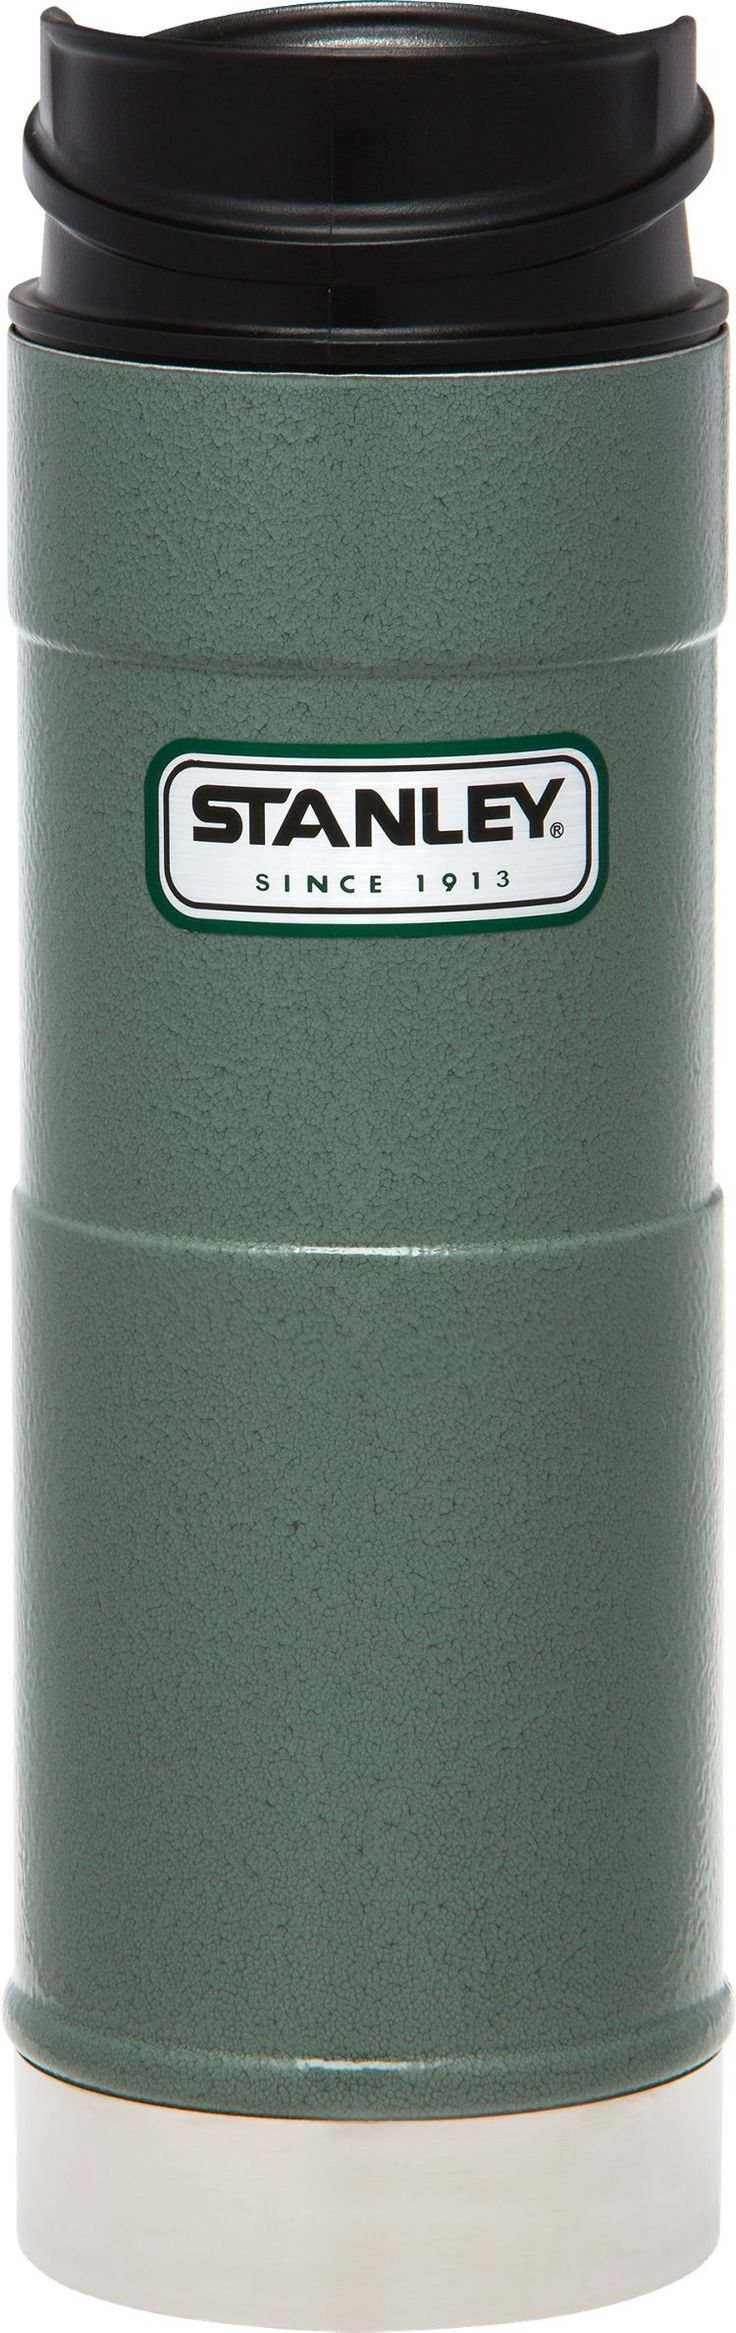 71 Best Stanley Thermos Images On Pinterest Stanley